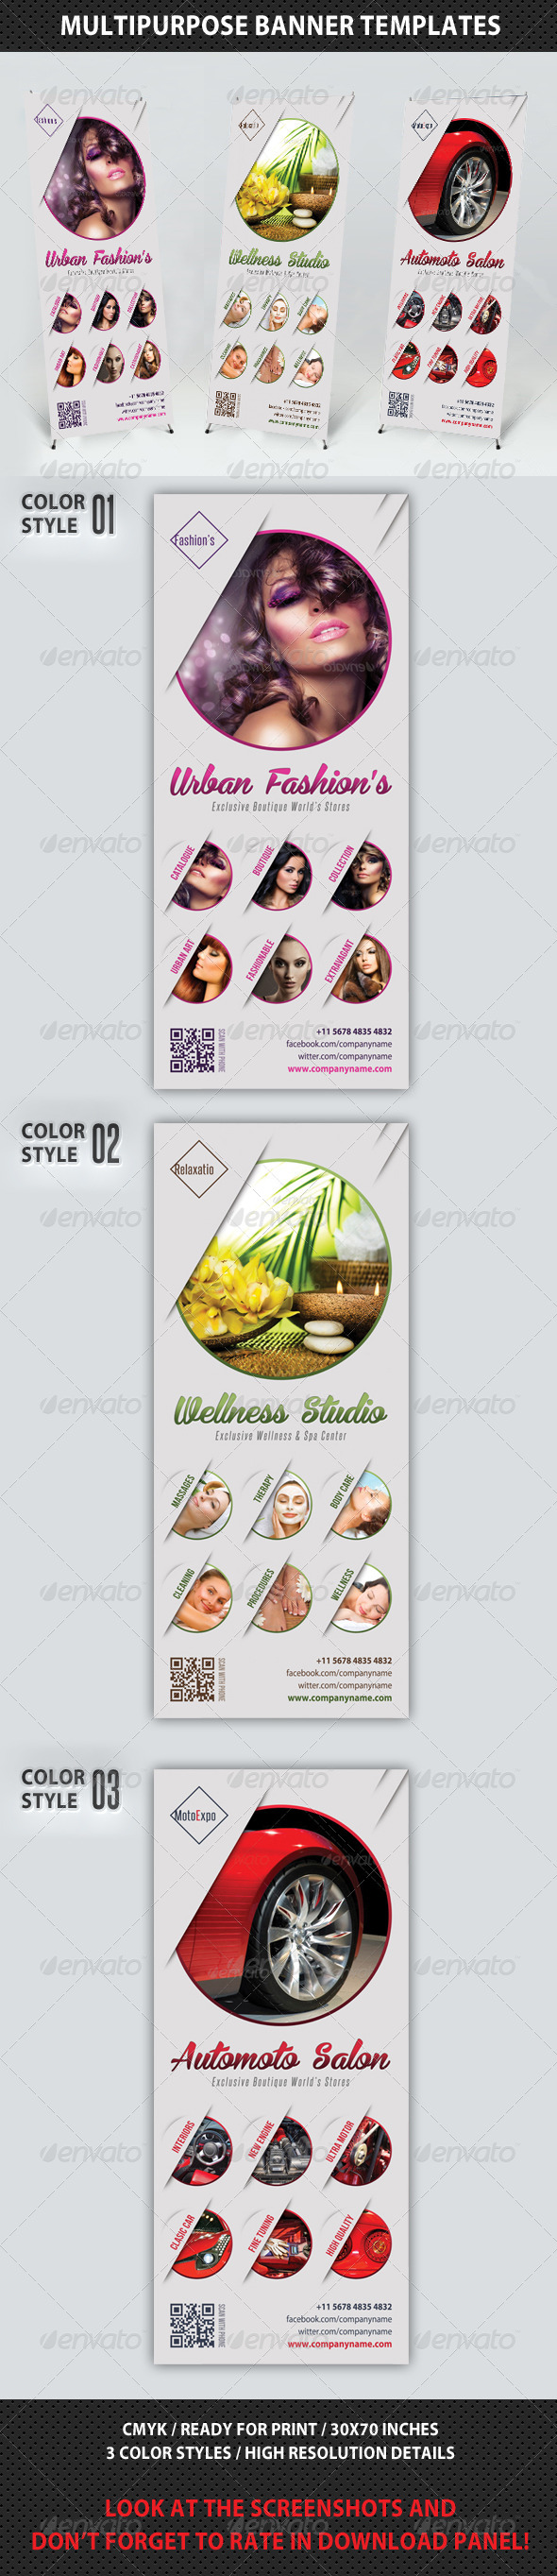 GraphicRiver Multipurpose Banner Template V03 7615661